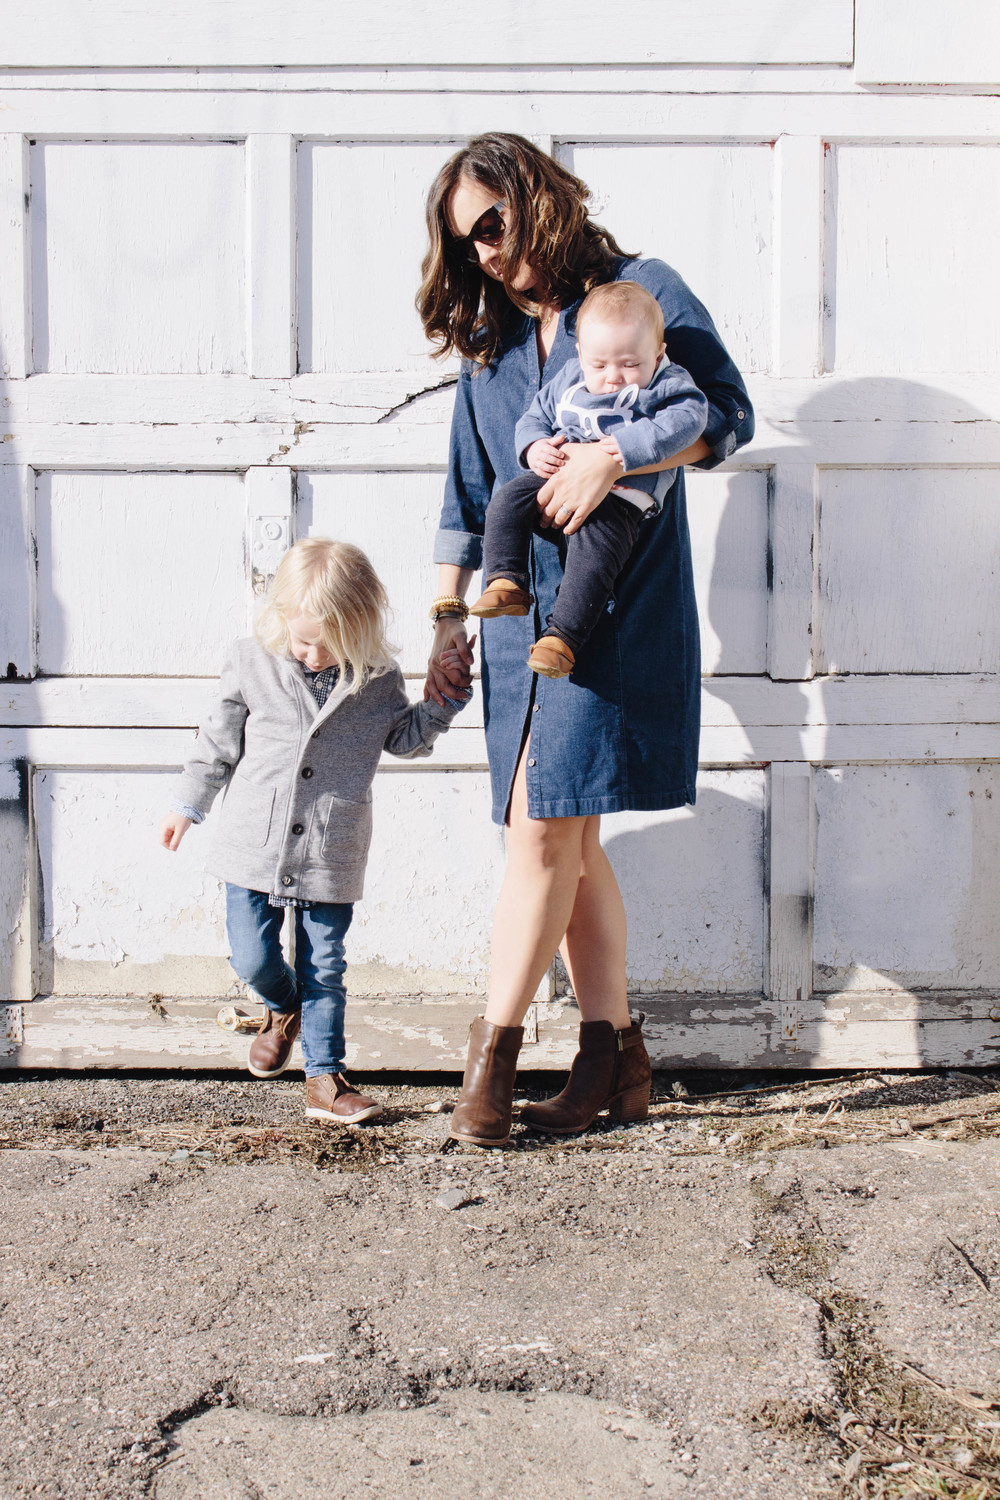 denim dress with booties, chambray outfits, dressing your kids fashionably, classic wear for kids, preppy, sundays best, h&m fashion for kids and adults,